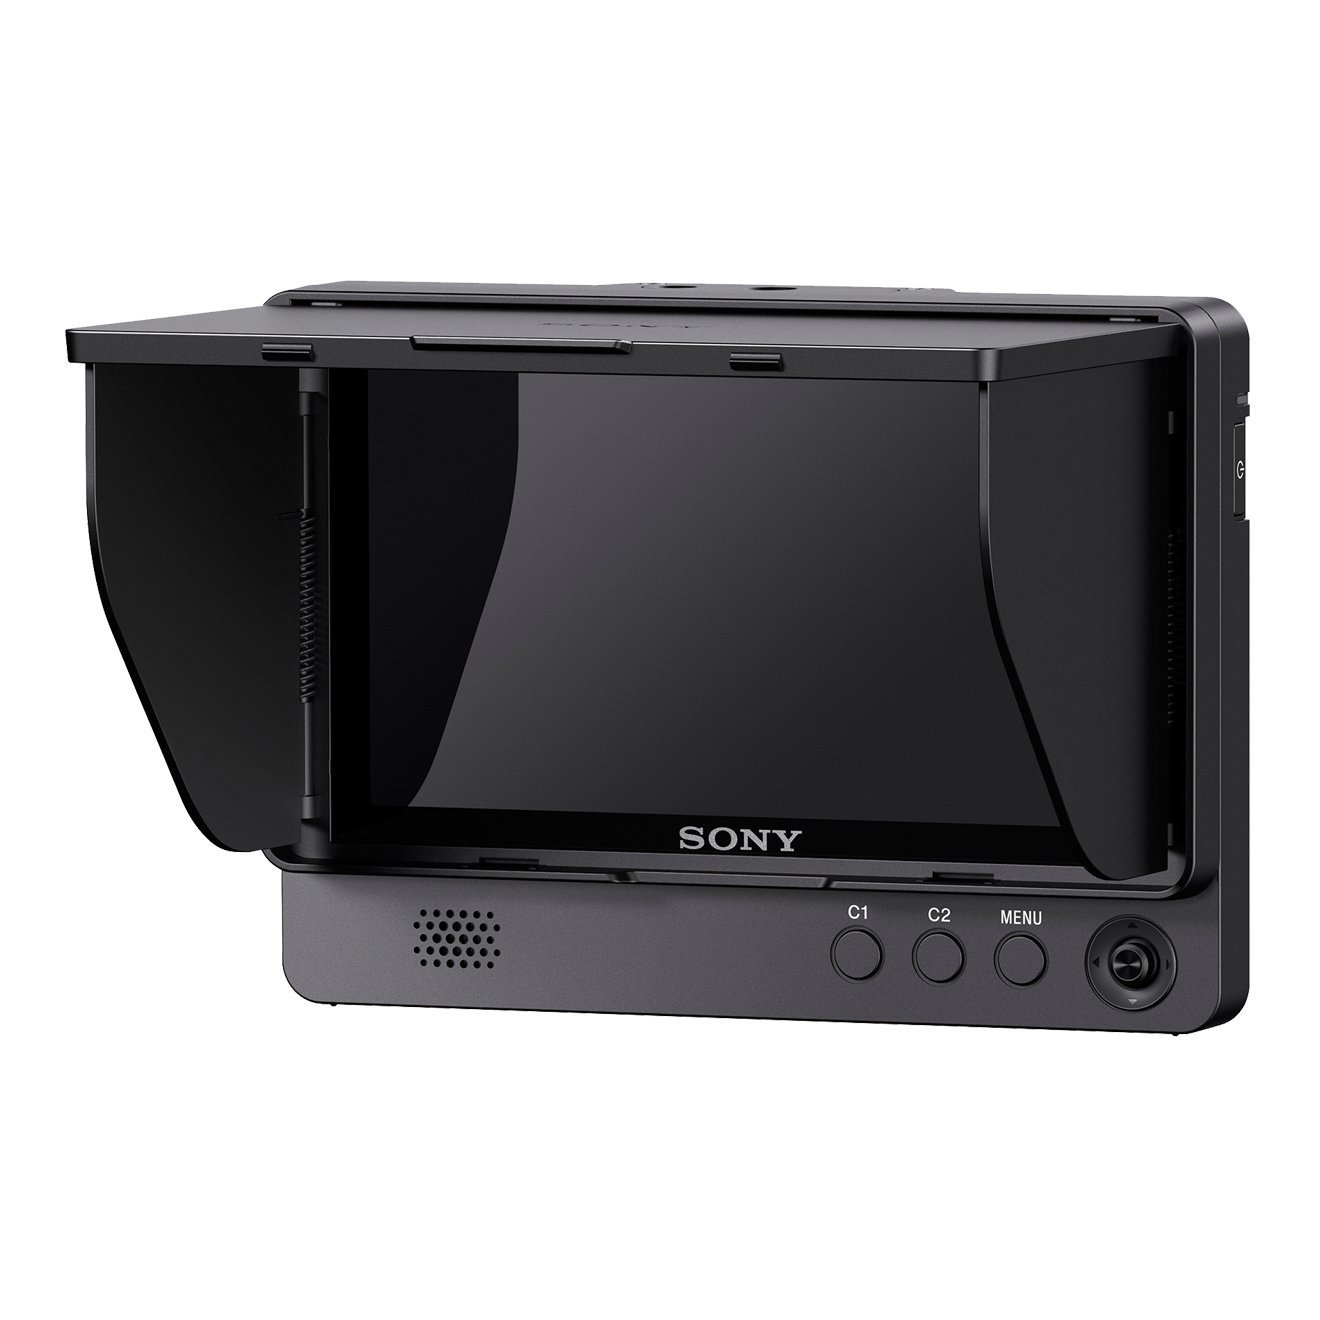 "Sony CLM-FHD5 - Monitor LCD de 5"" con resolución Full HD, Negro"